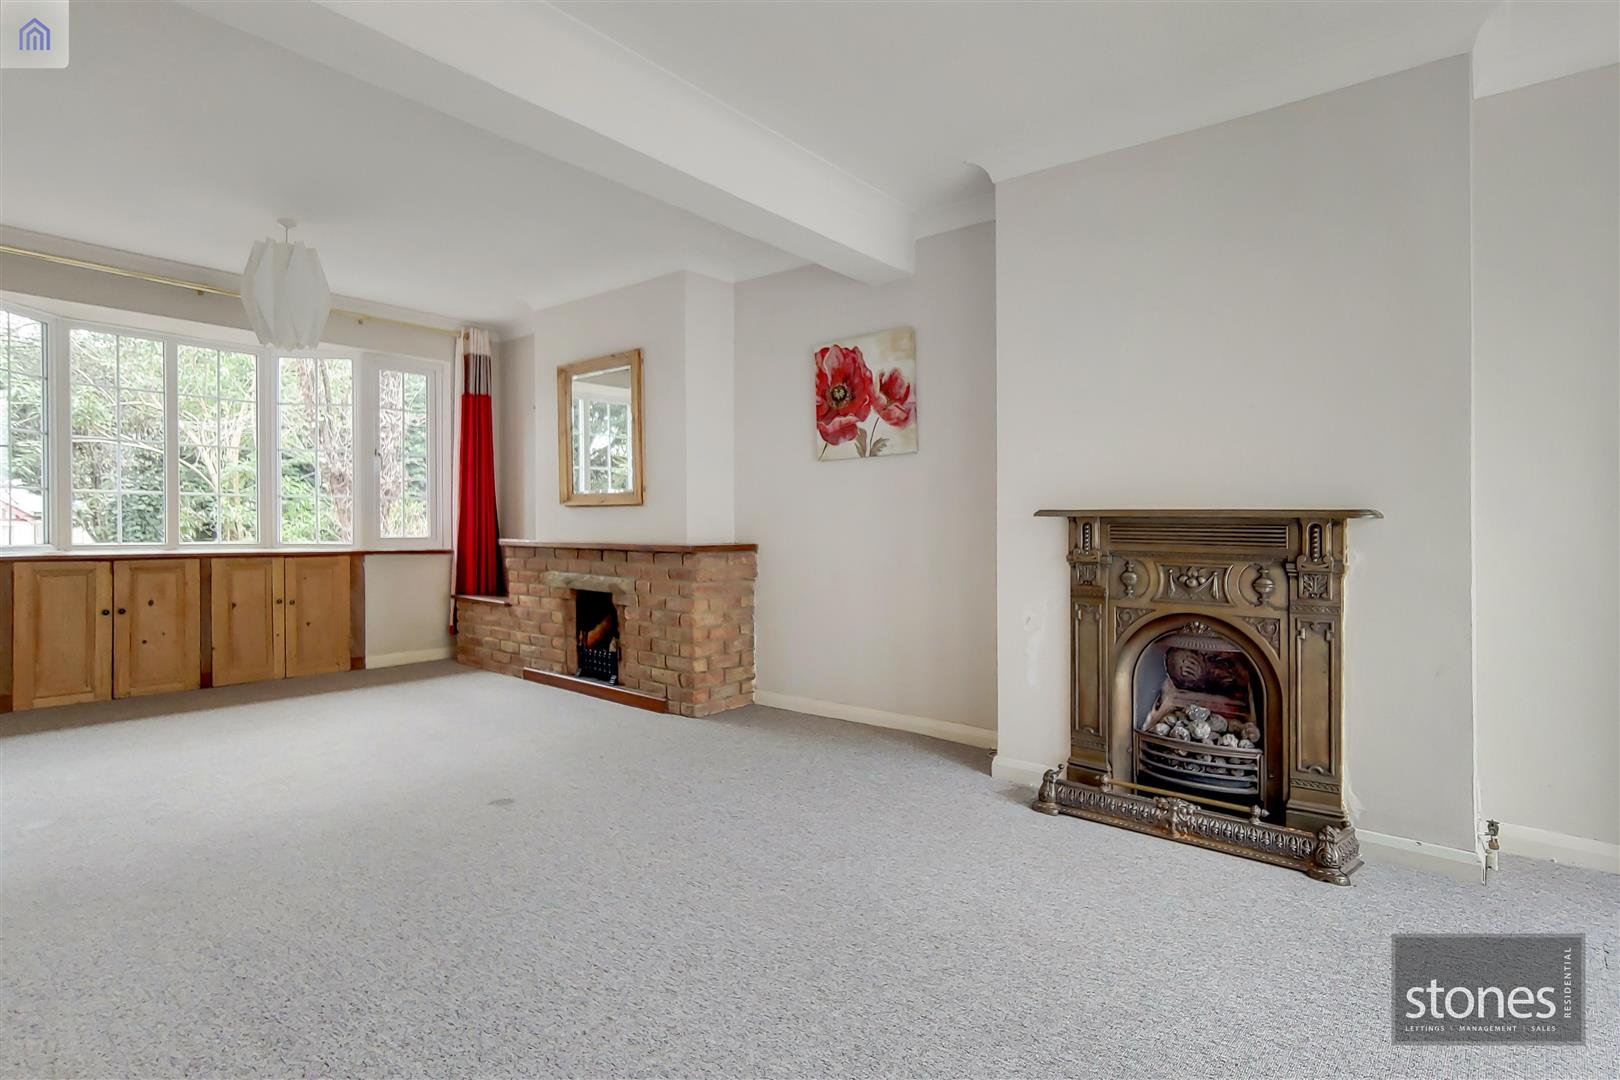 Images for Kenton Lane, Harrow